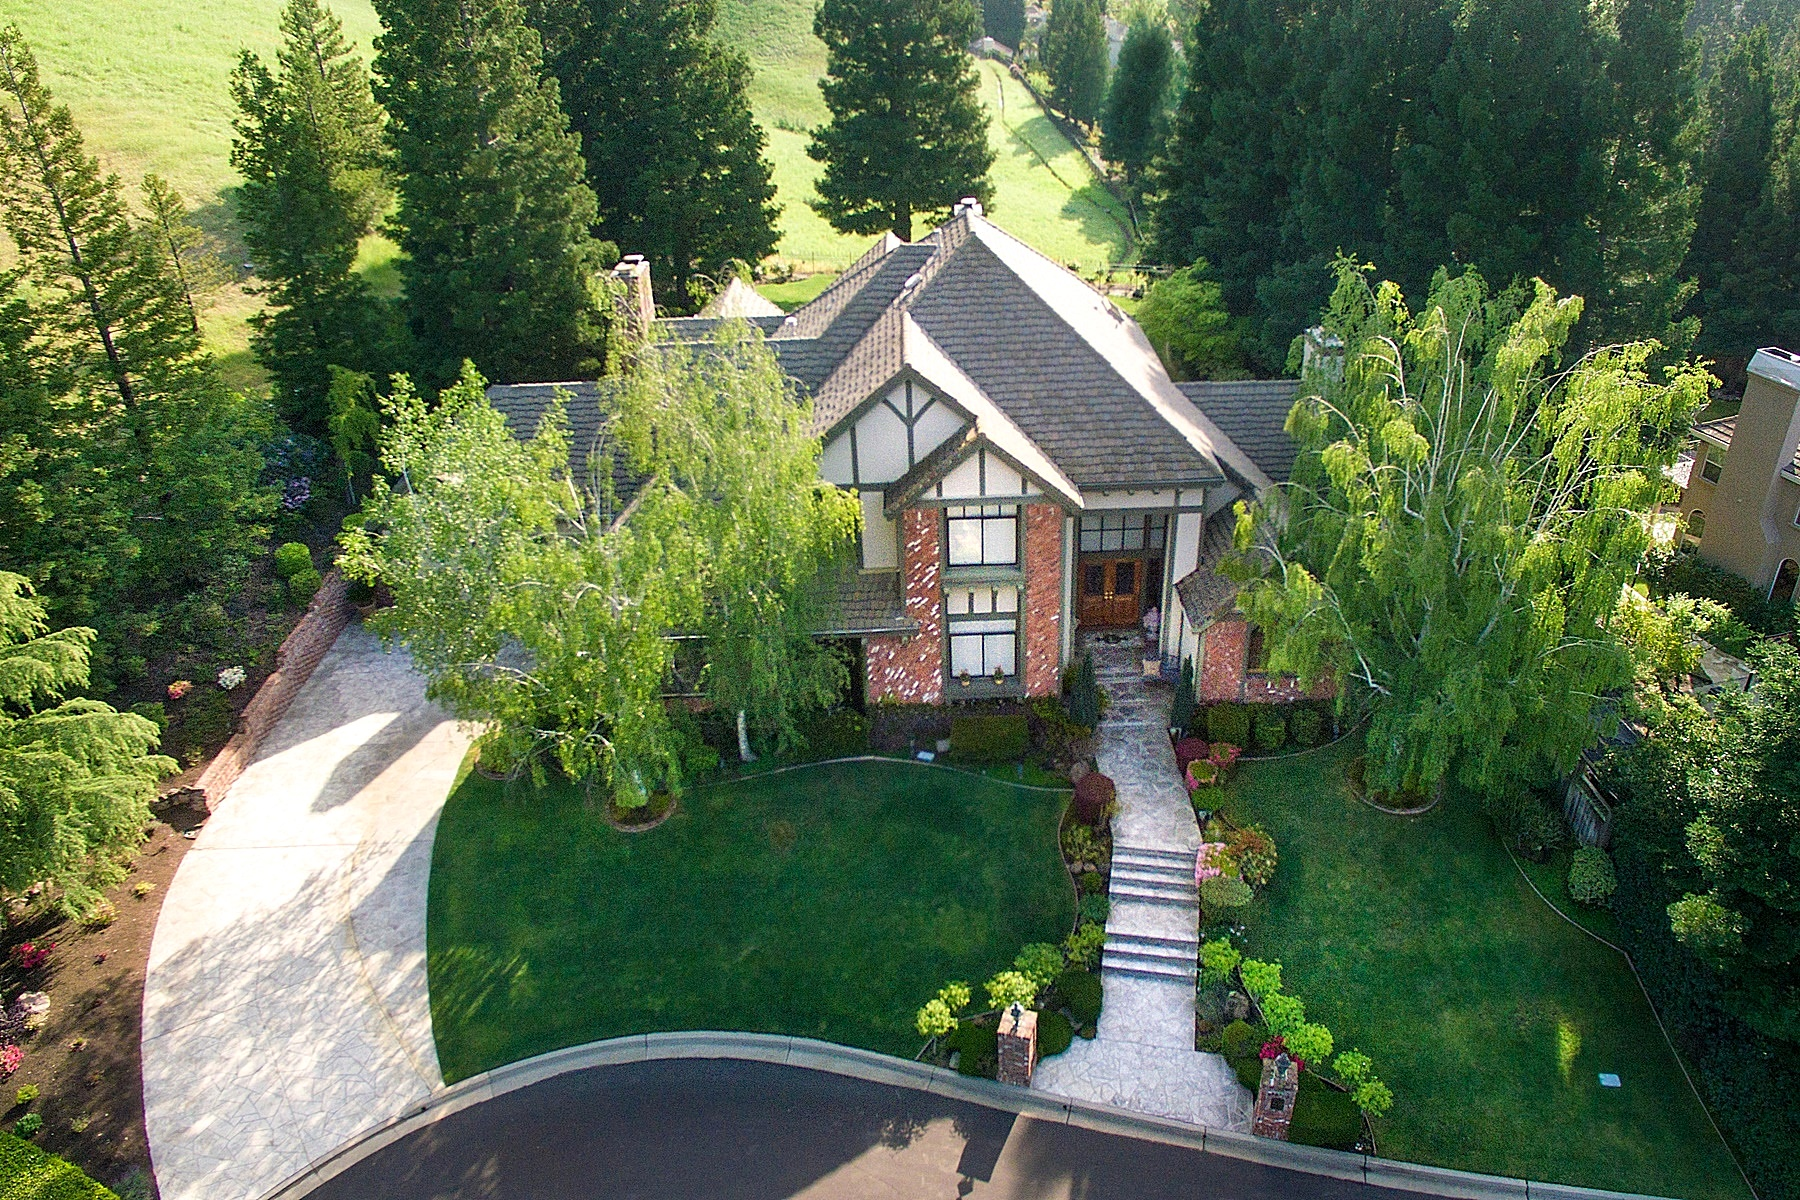 Maison unifamiliale pour l Vente à Exquisite Custom Estate 3410 Deer Ridge Drive Danville, Californie, 94506 États-Unis